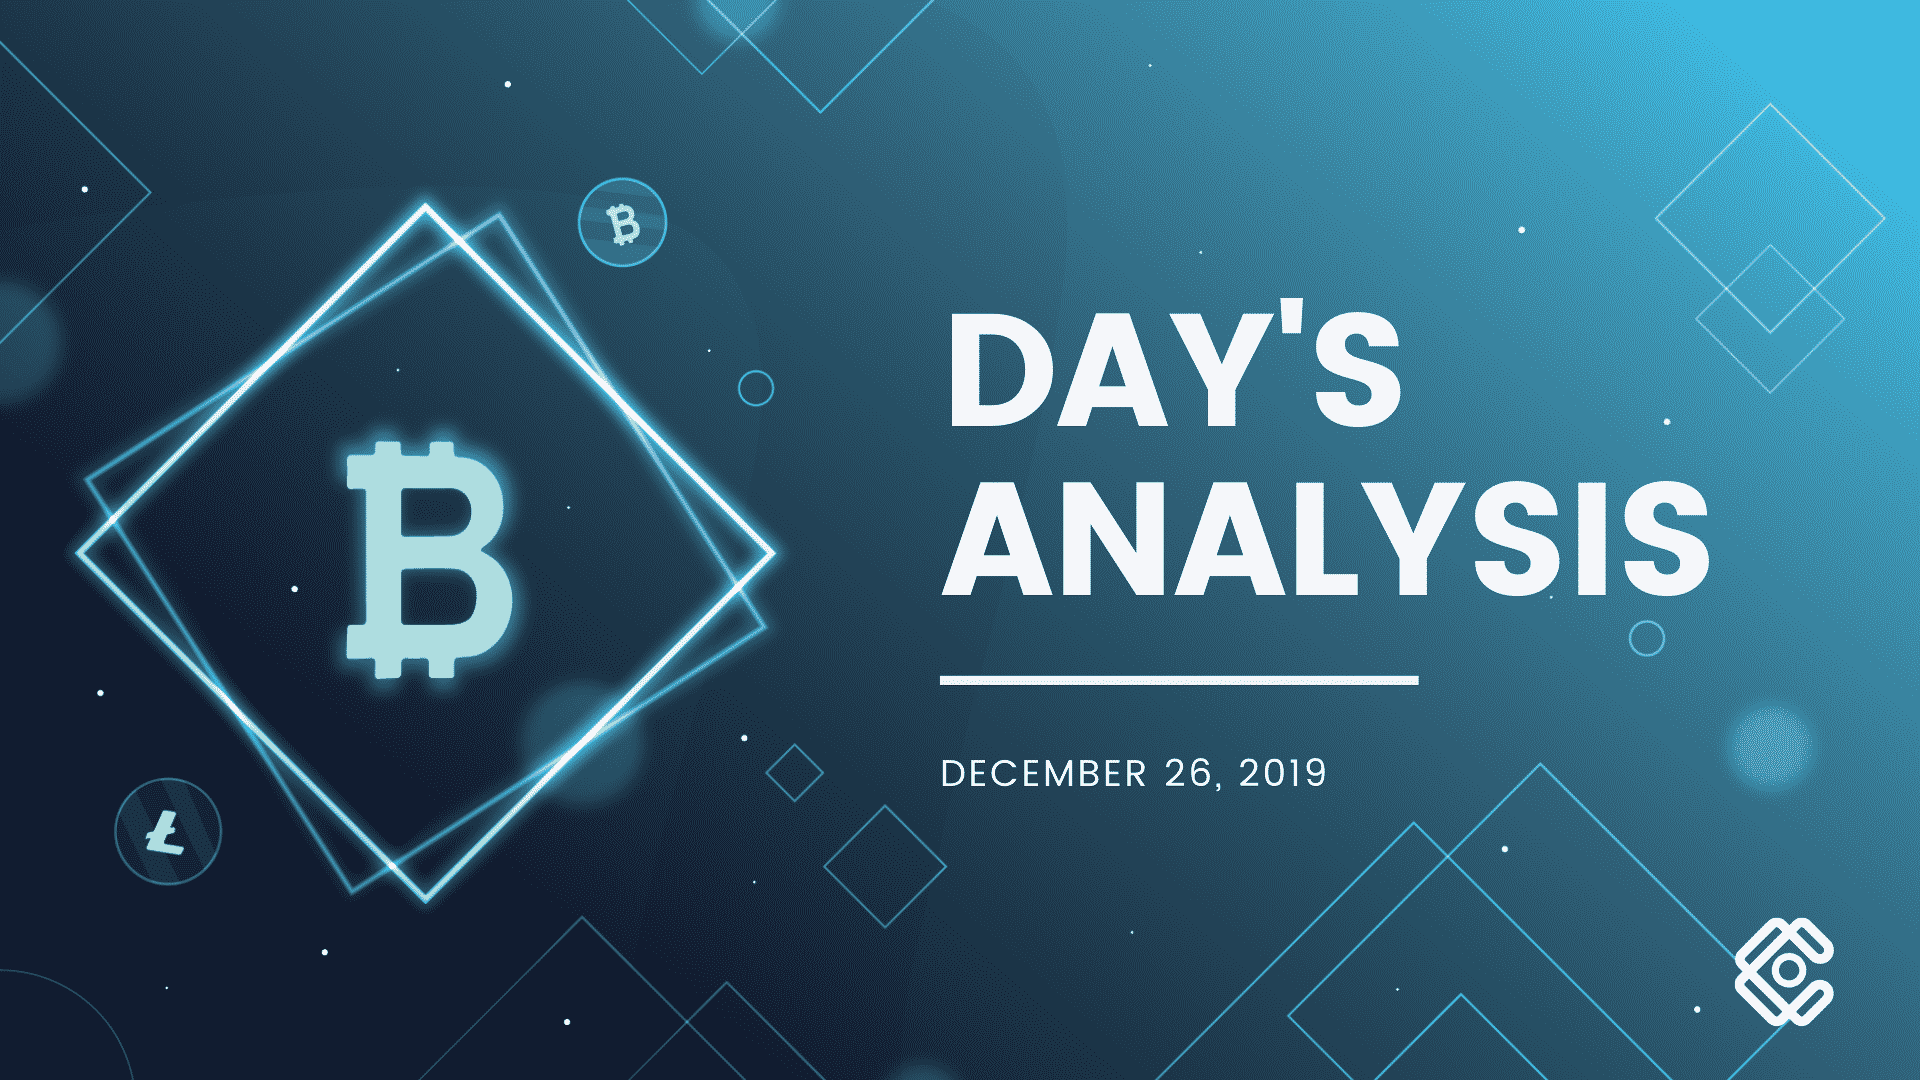 Market Analysis of December 26, 2019